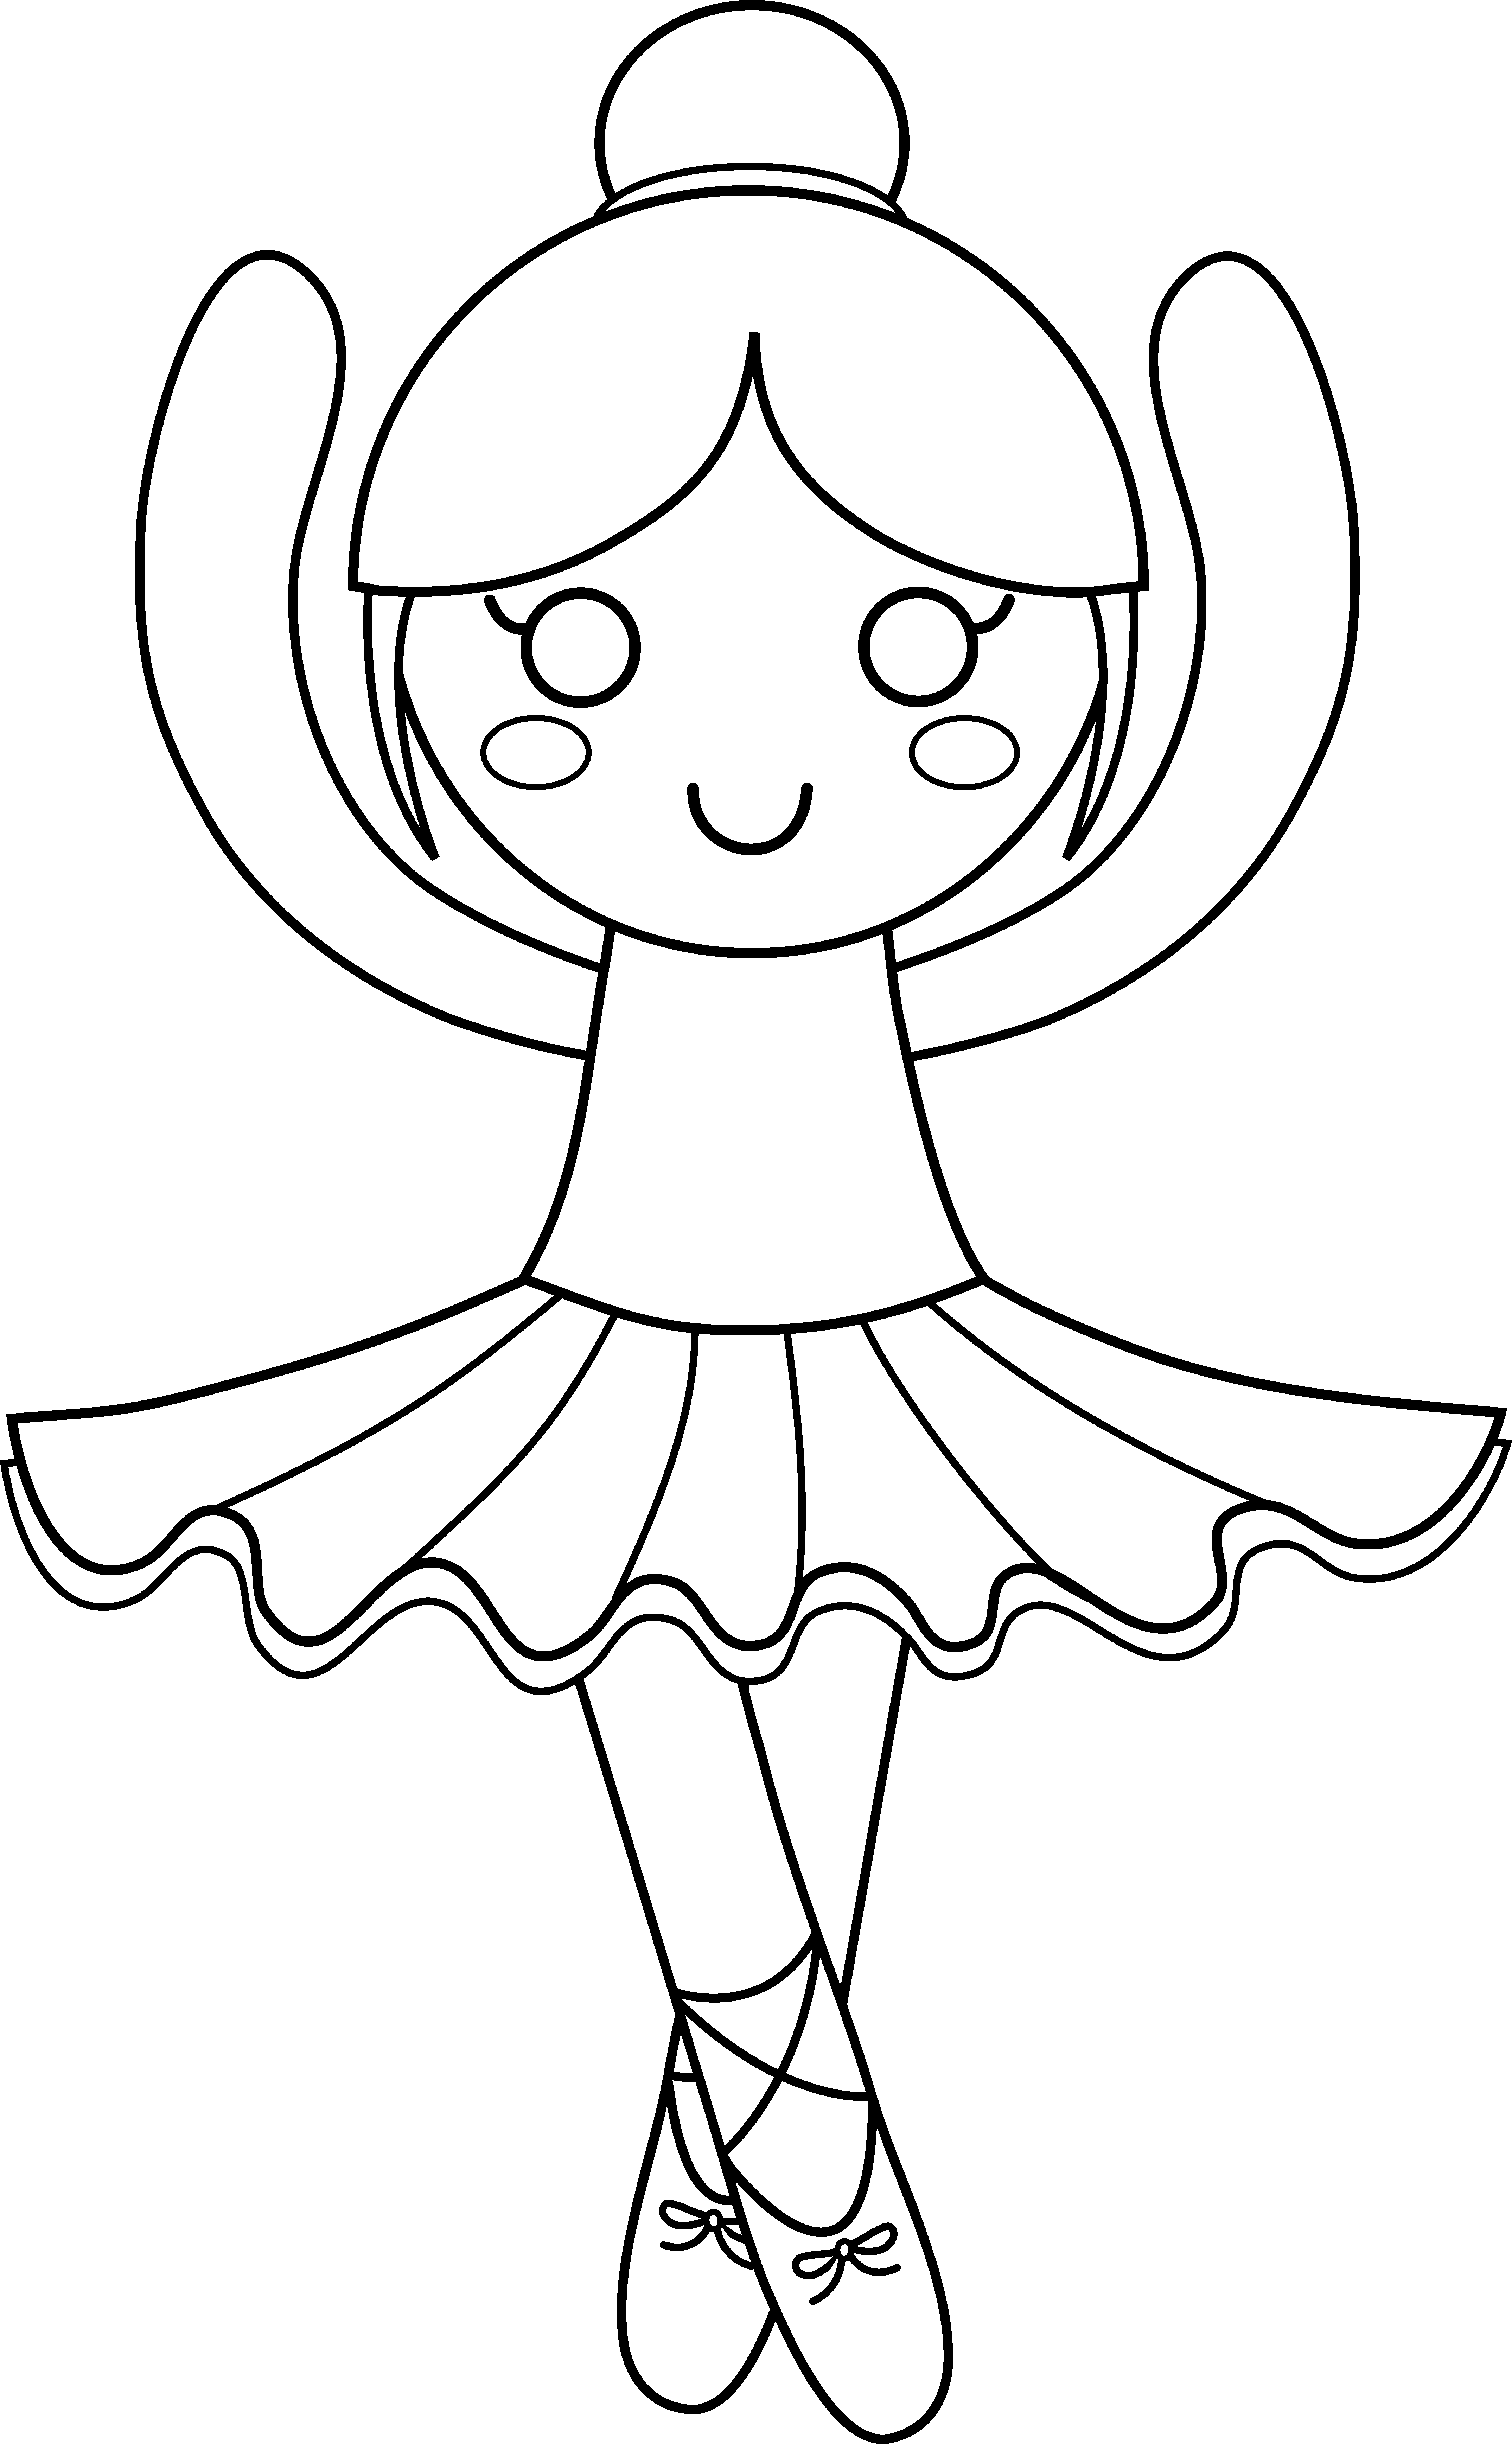 Pomegranate clipart black and white. Cute ballerina coloring page